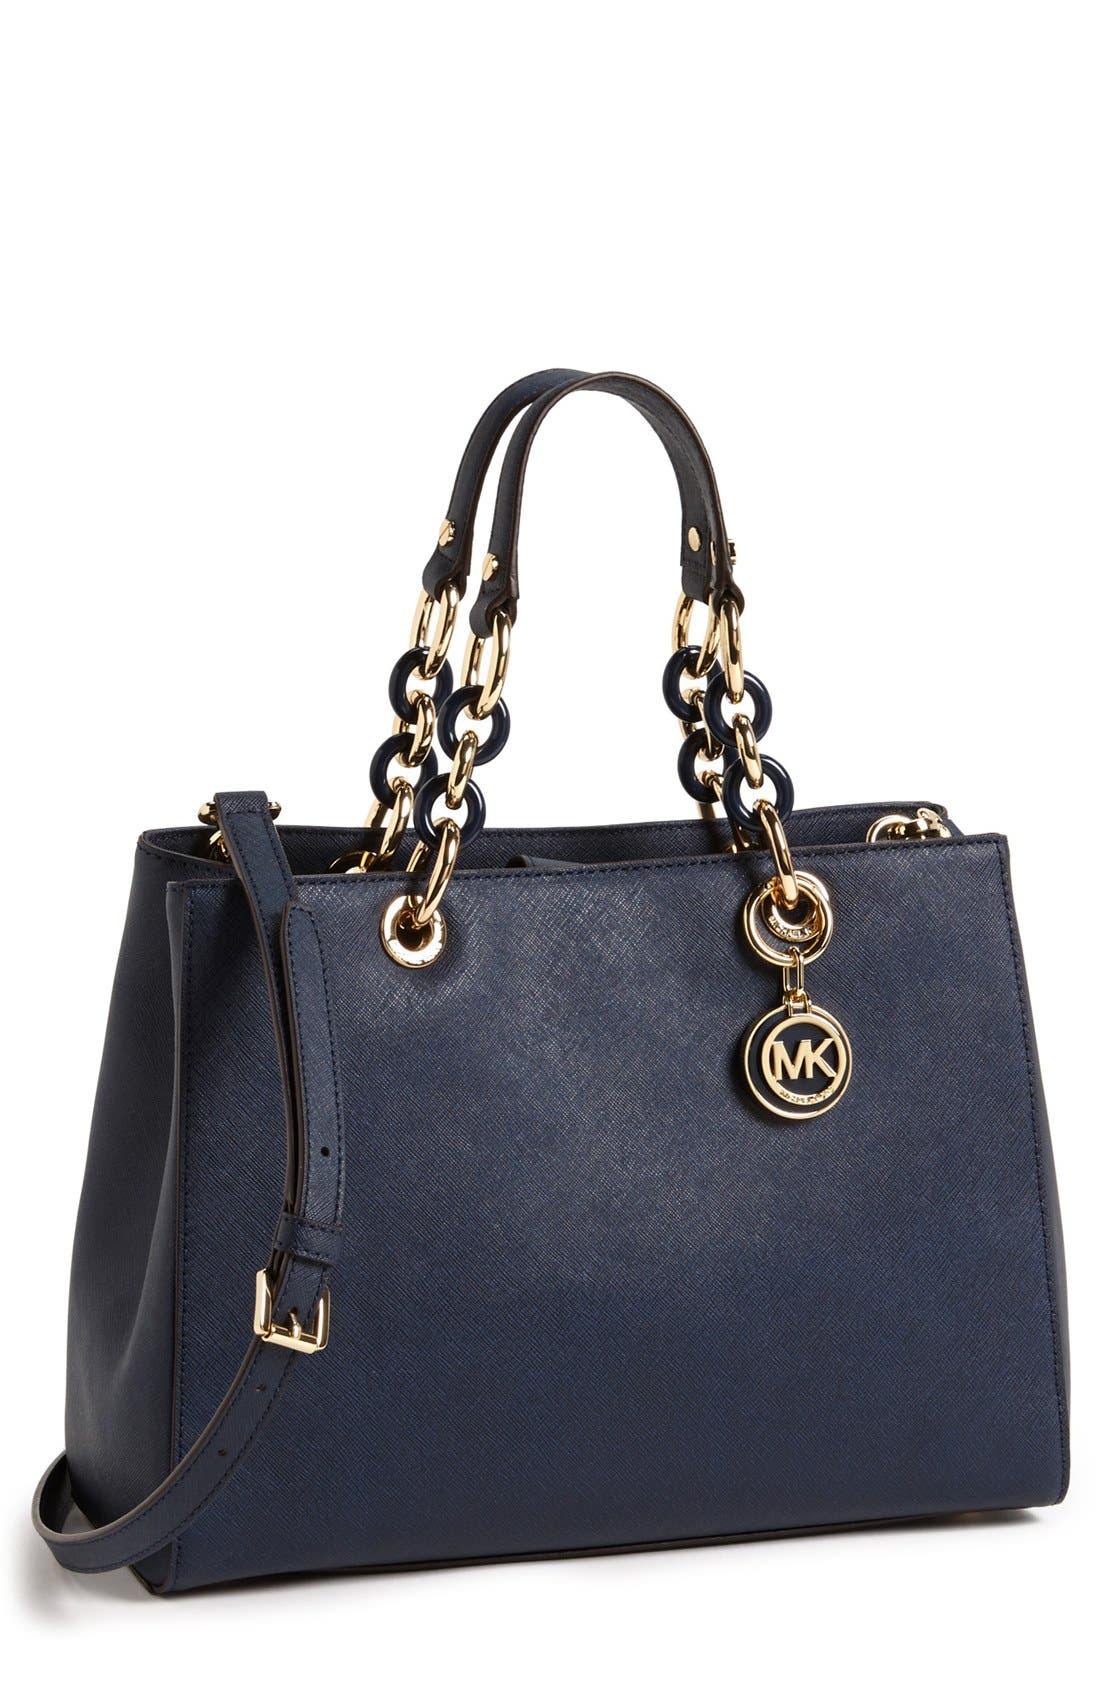 Alternate Image 1 Selected - MICHAEL Michael Kors 'Cynthia' Saffiano Leather Satchel